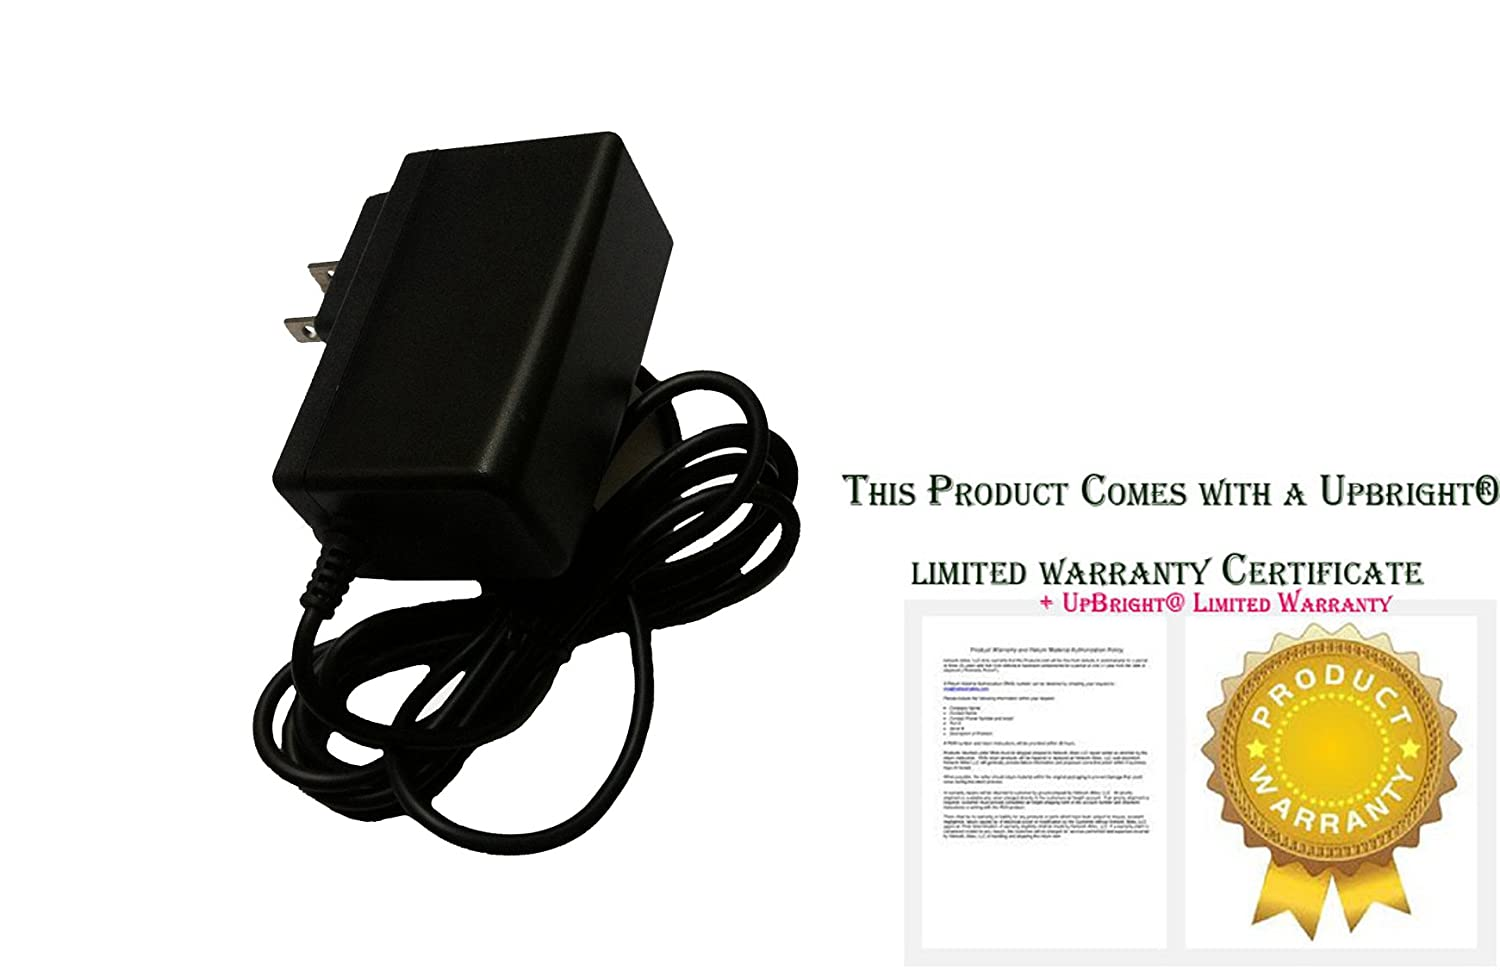 12v Dc Power Adapter Supply 21mm 1a Cctv Ac Plug Wiring Without The Metals Adapters Camera Photo